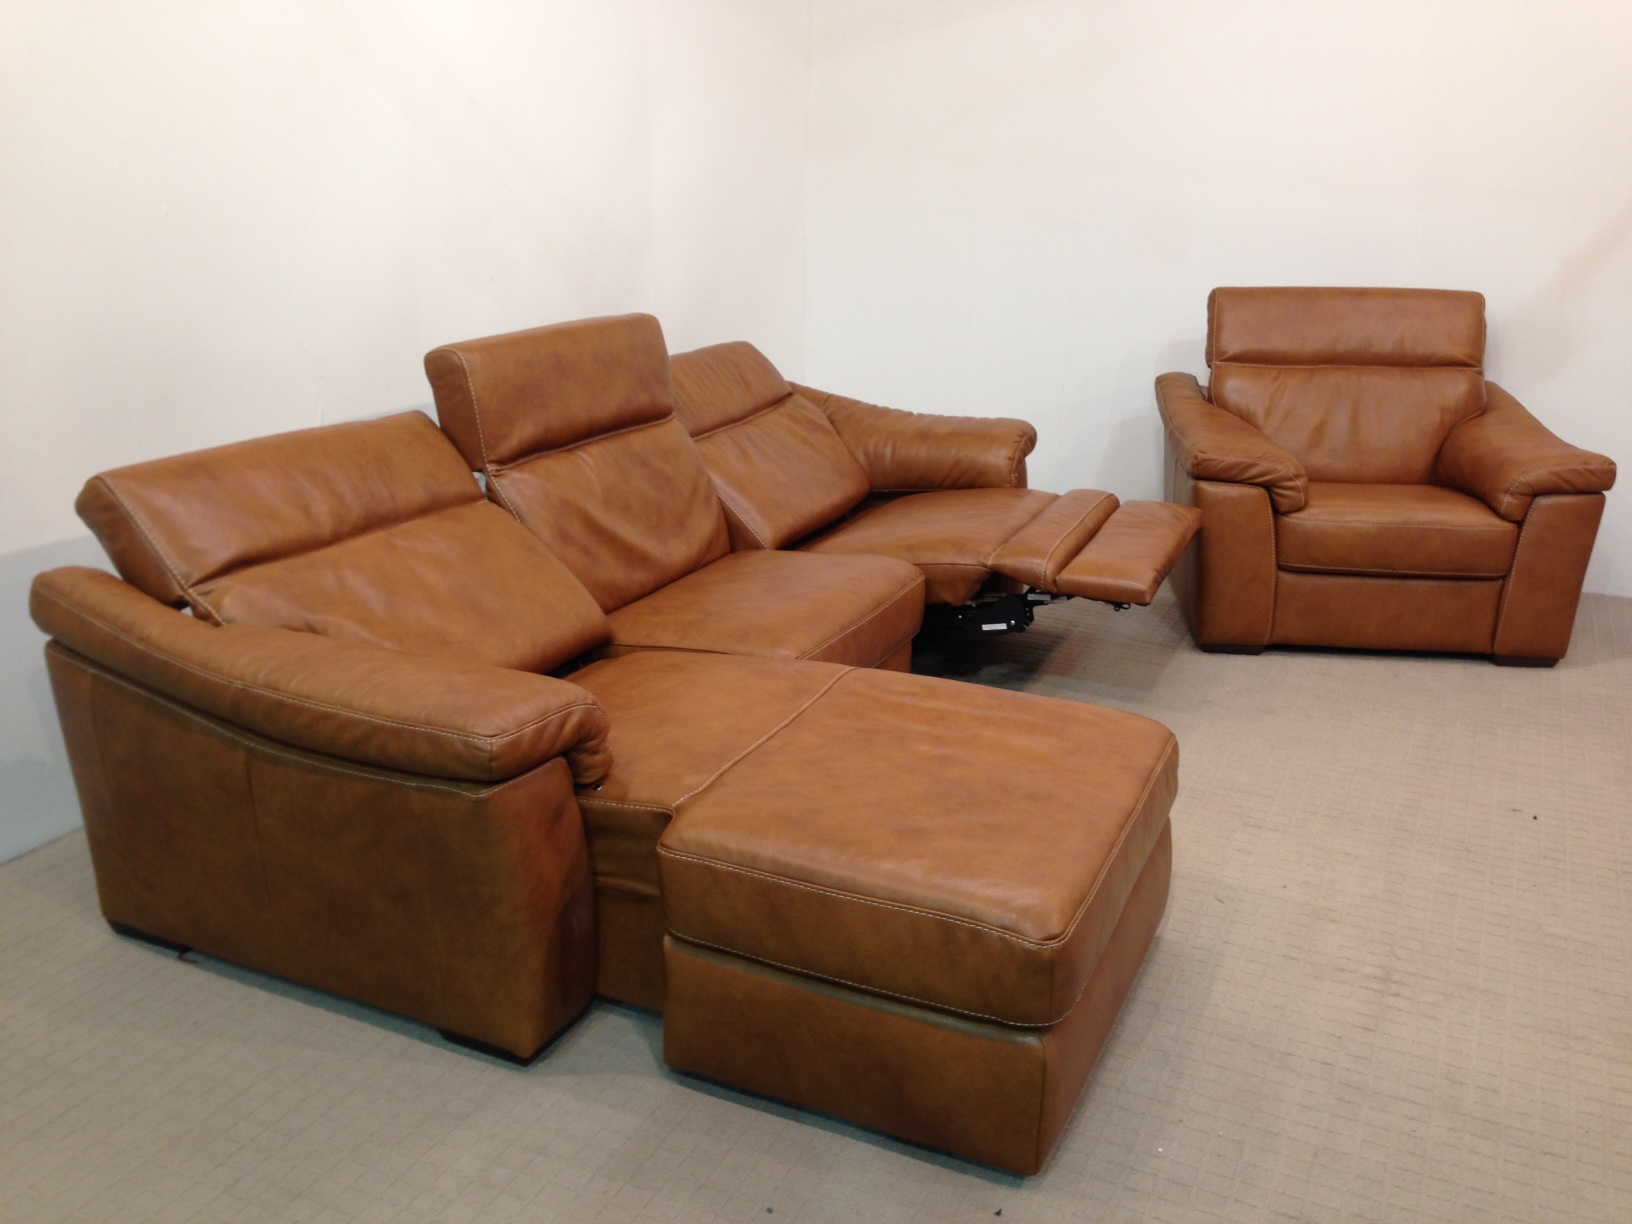 natuzzi lounge chair swivel price in bd editions sensor b760 electric chaise sofa and static